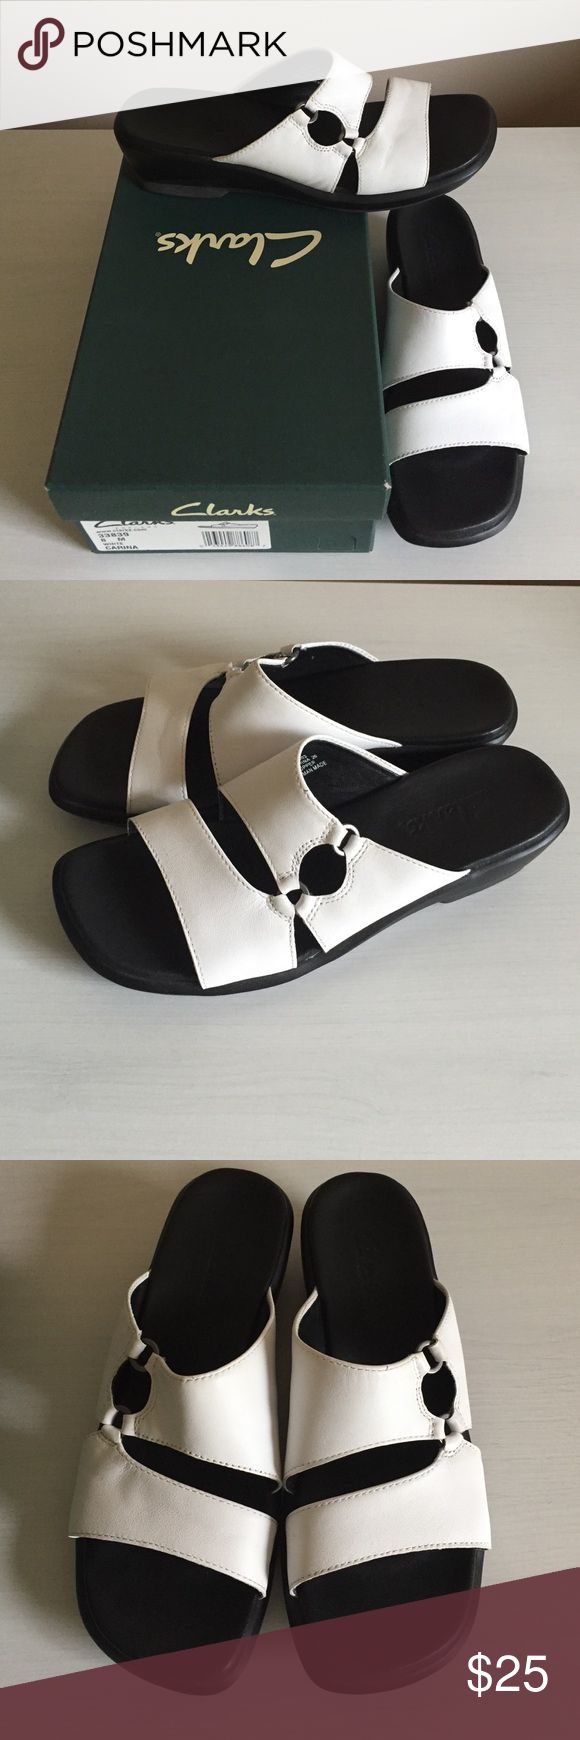 Clarks Sandals Clarks Sandals - wore a handful of times. Clarks Shoes Sandals